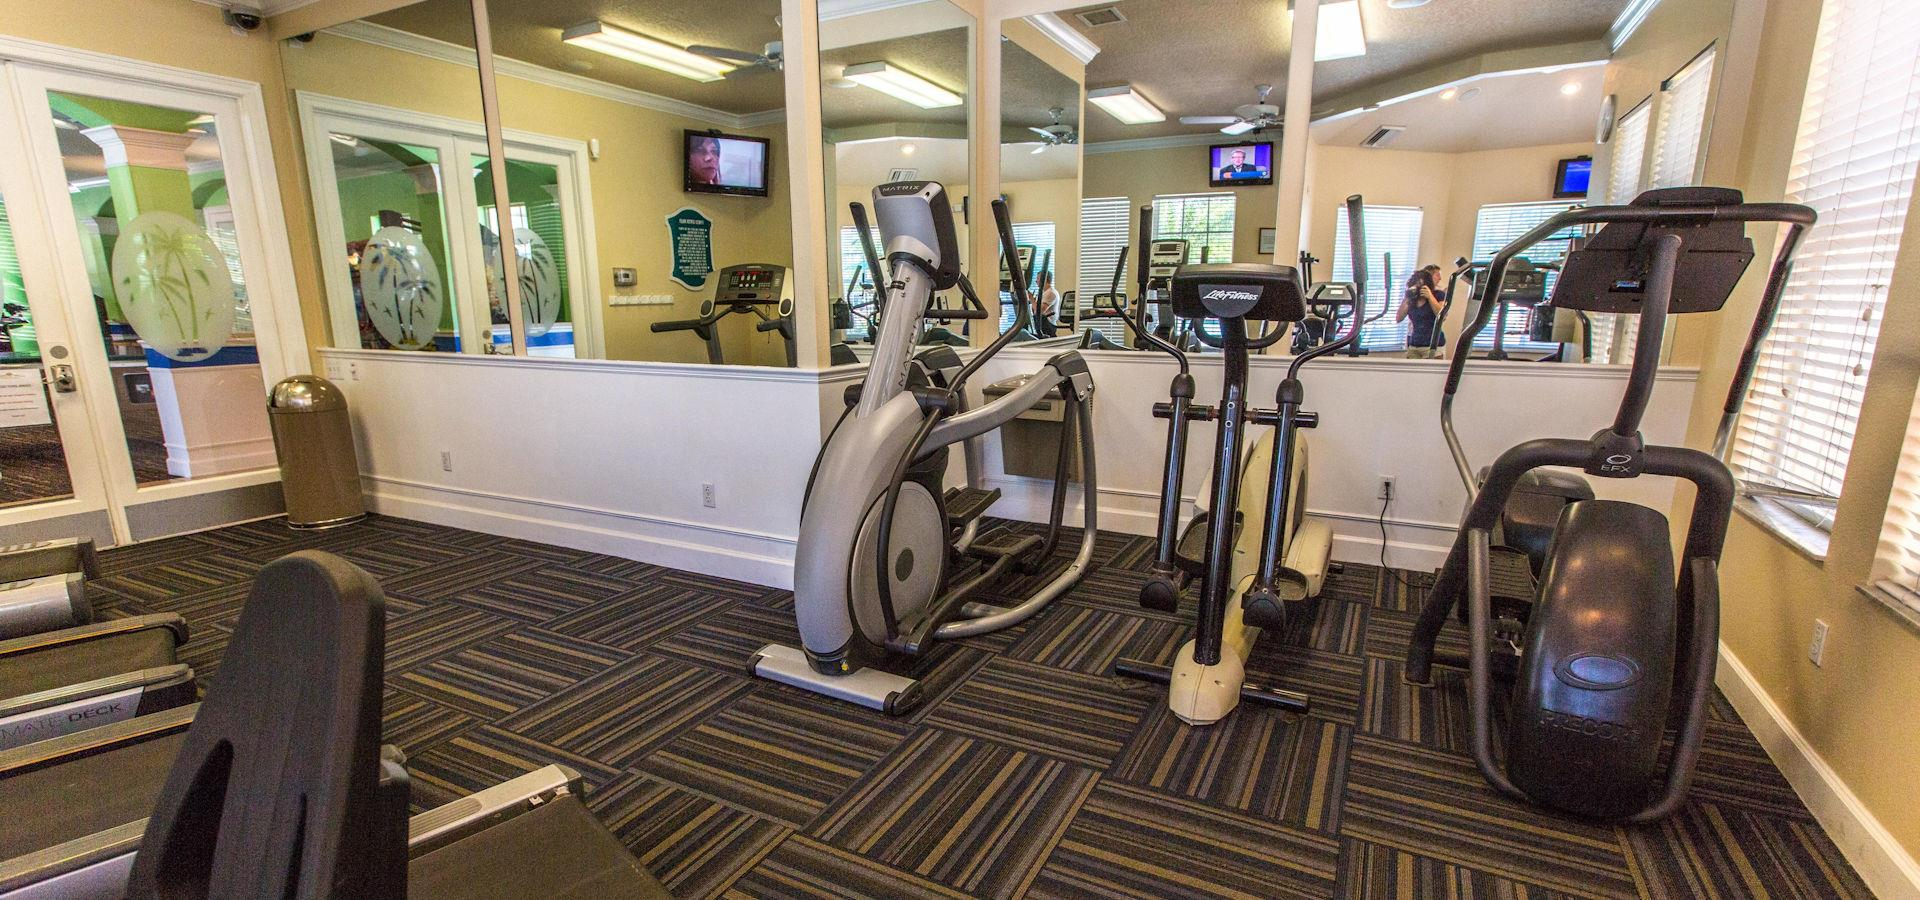 Fitness Room and Gym